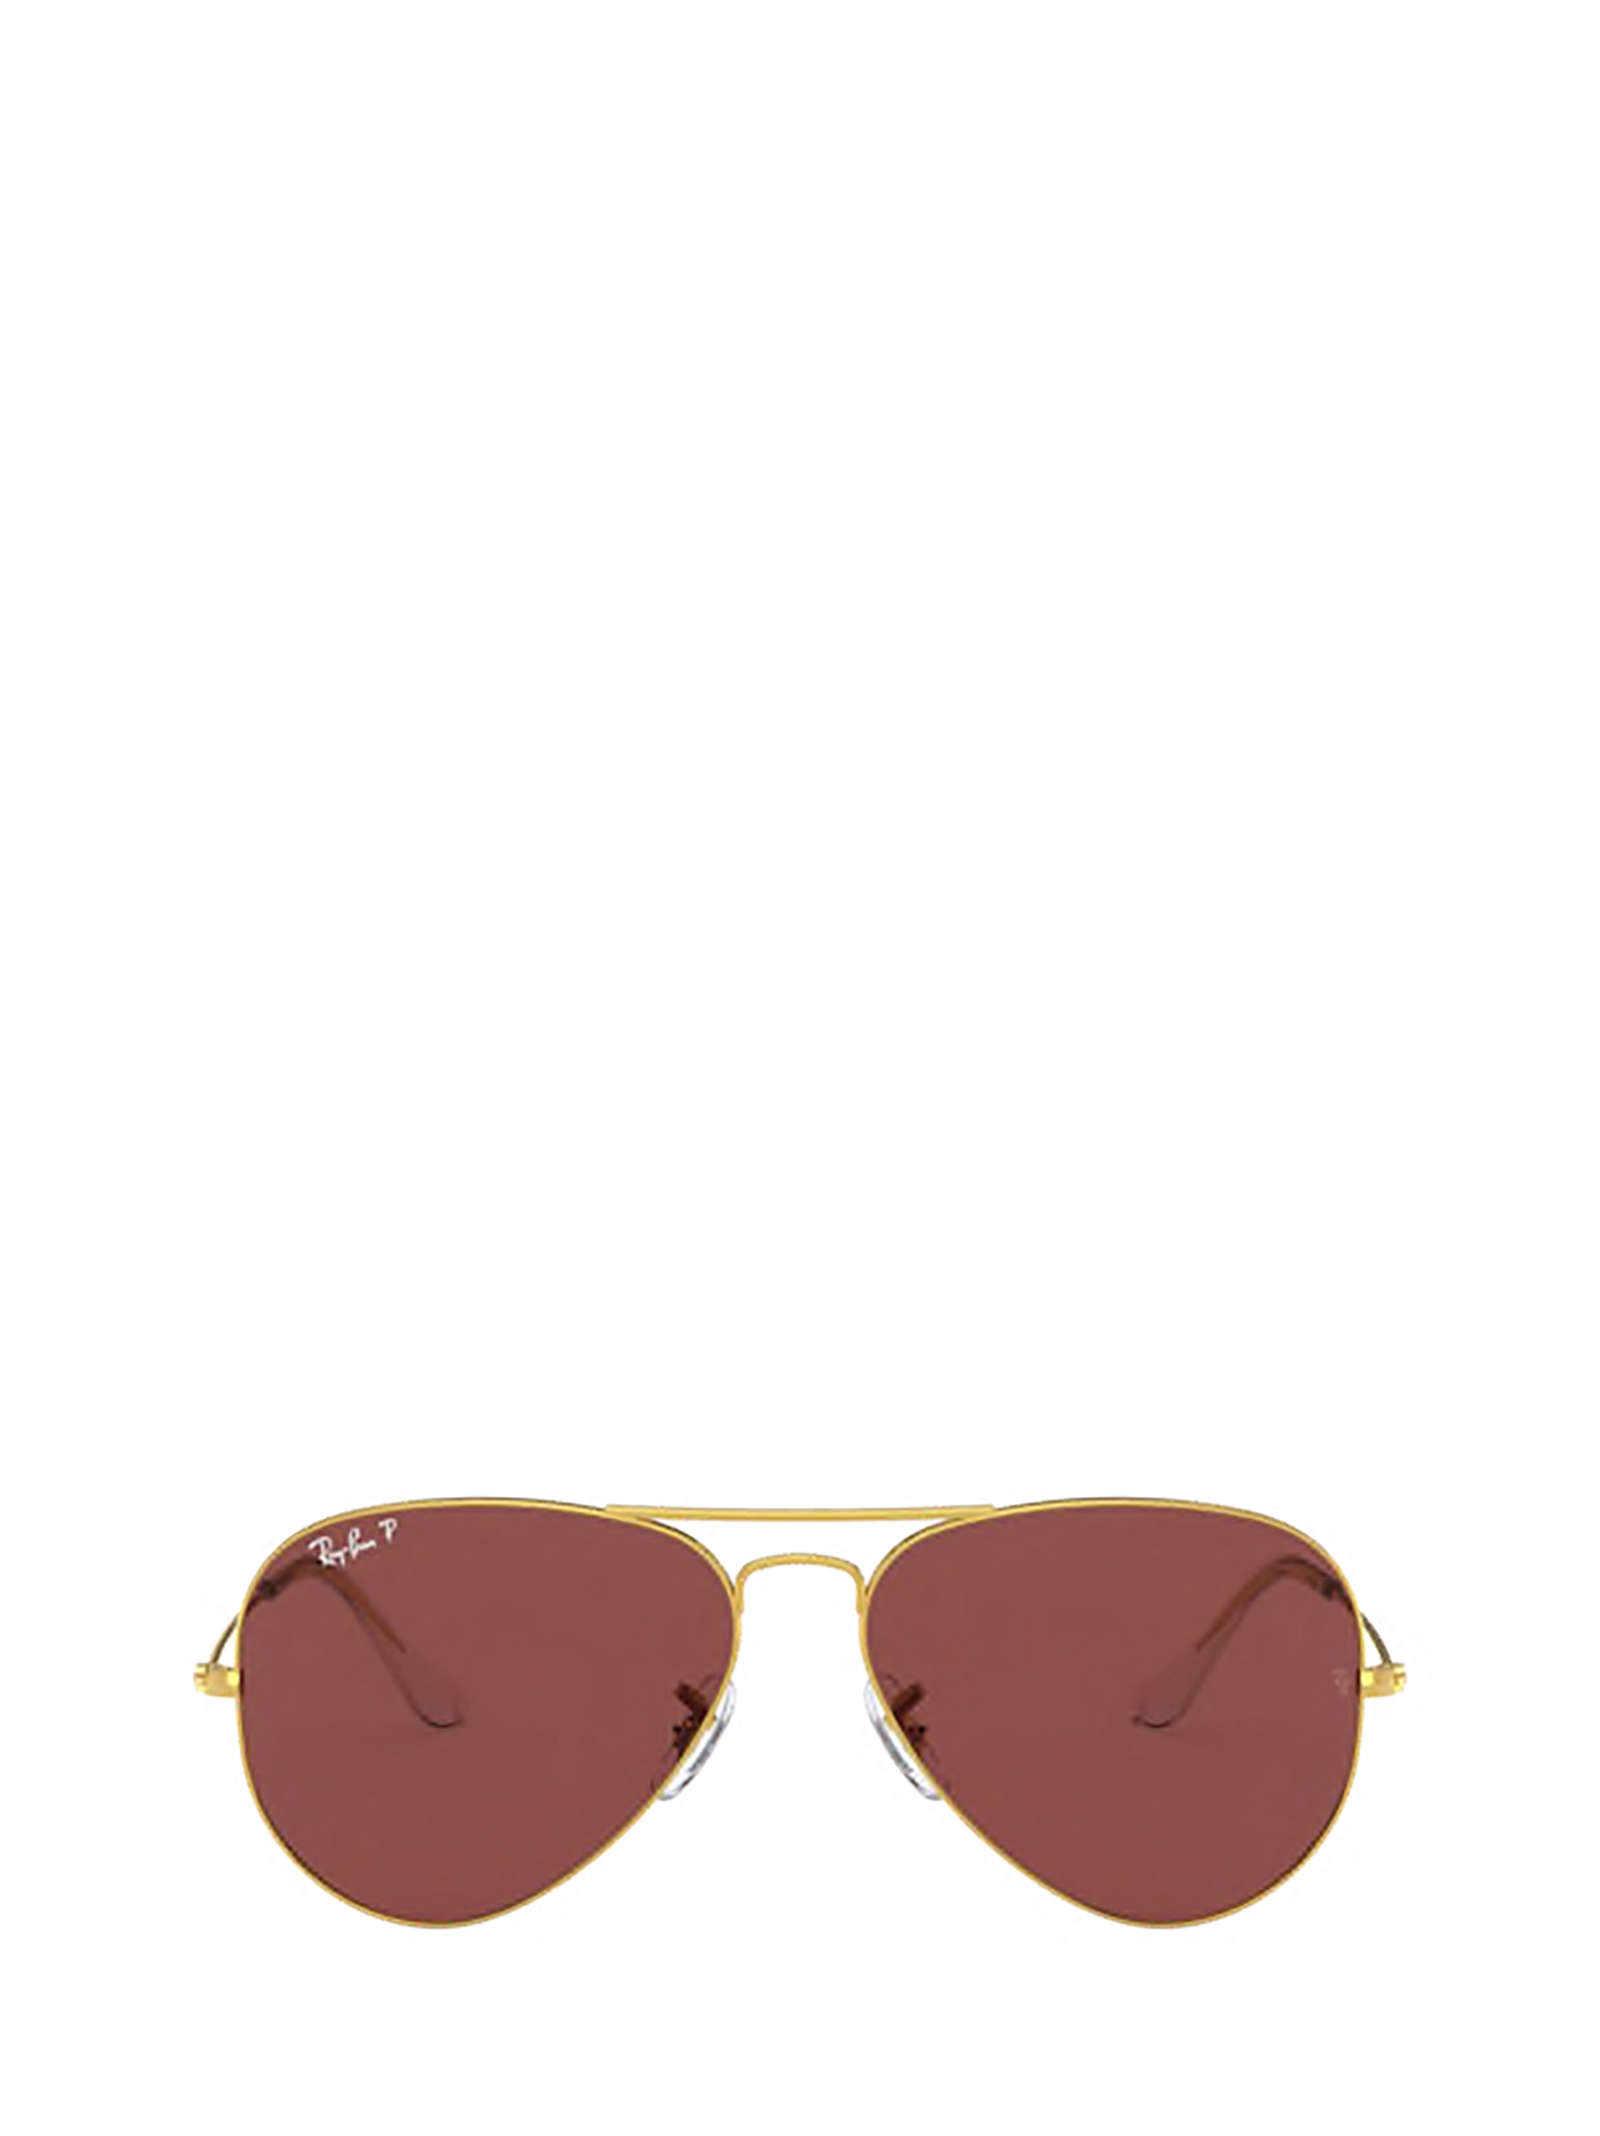 Ray-Ban Ray-ban Rb3025 Legend Gold Sunglasses